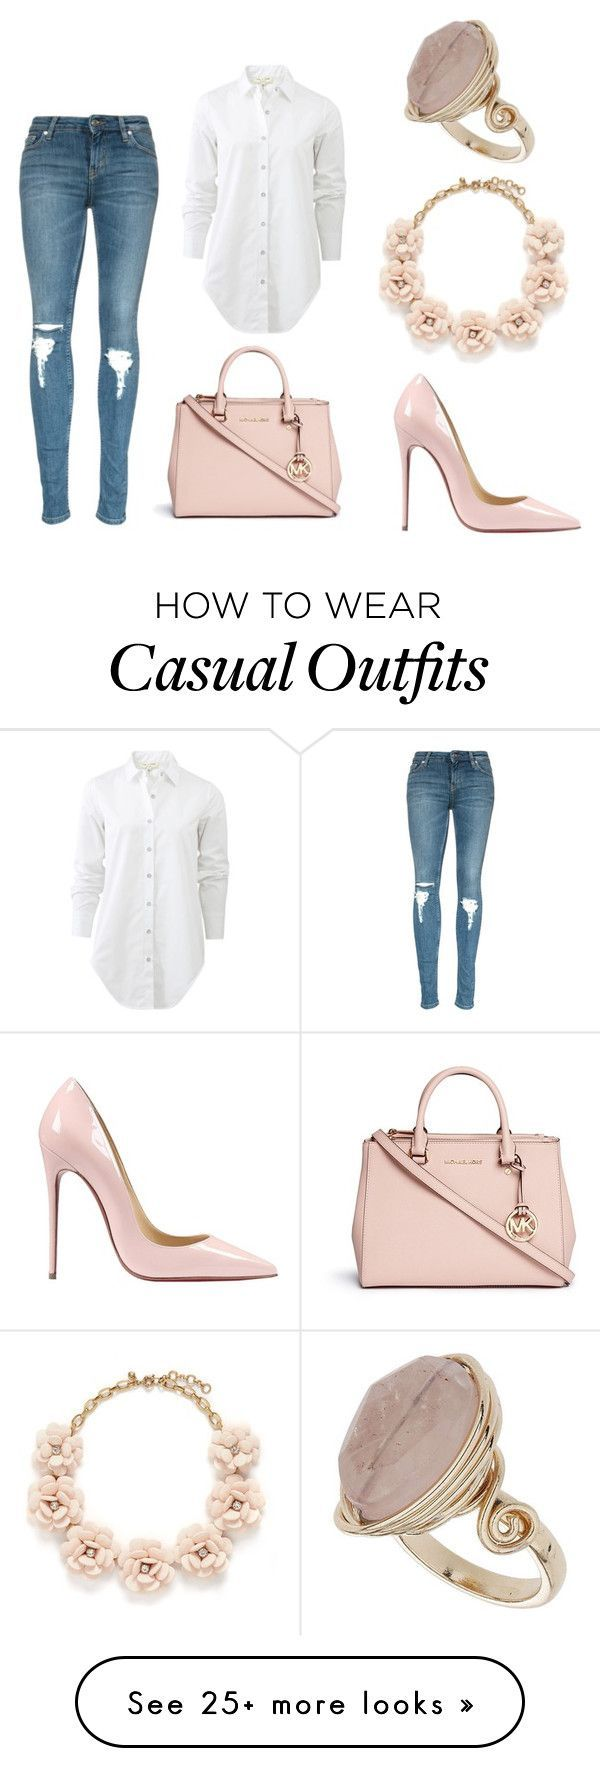 """""""#nude #casual #chic"""" by nicolekon on Polyvore featuring Michael Kors, rag & bone, Christian Louboutin, J.Crew, Topshop, women's clothing, women, female, woman and misses"""